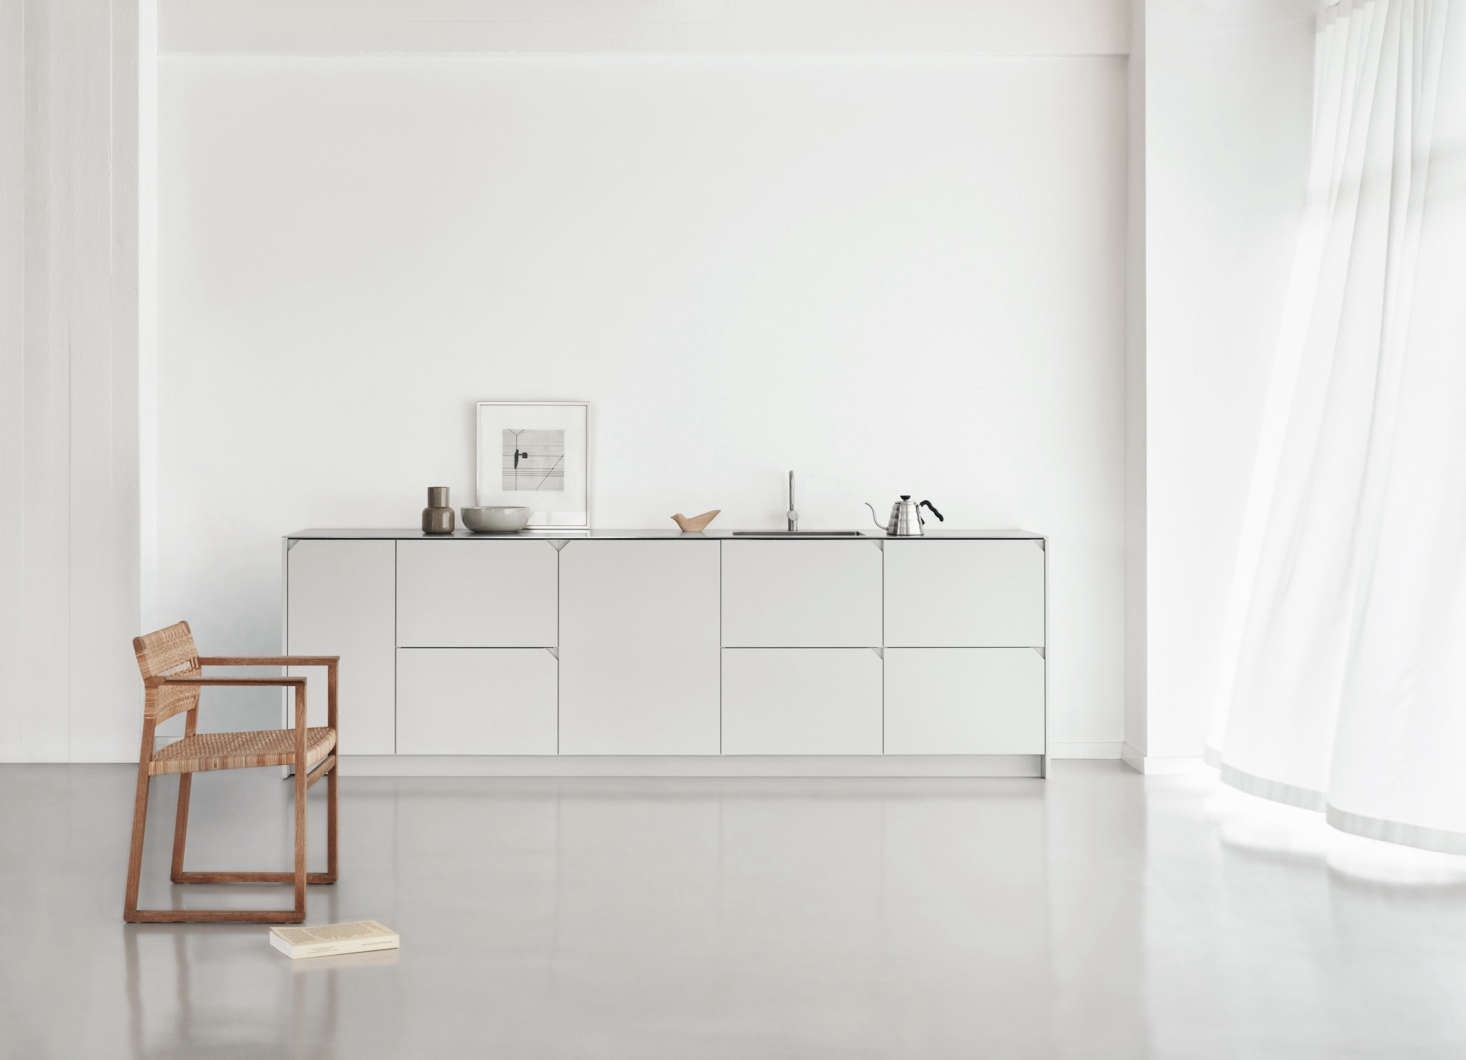 For a uniform look, Reform offers the fronts in MDF that&#8